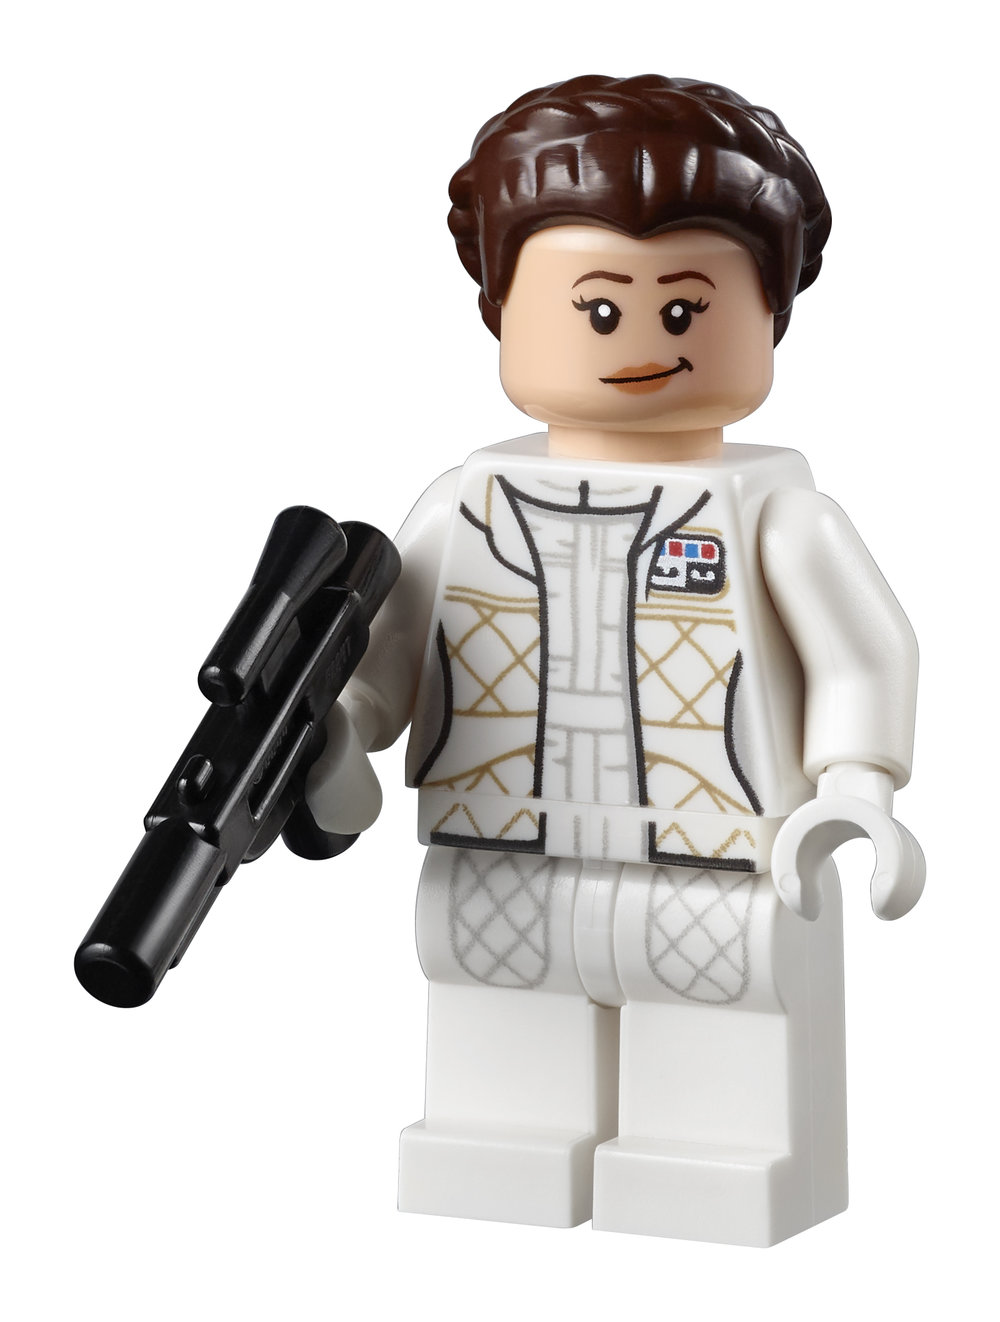 75222_Top_Panel_Minifigure_08_NEW.jpg